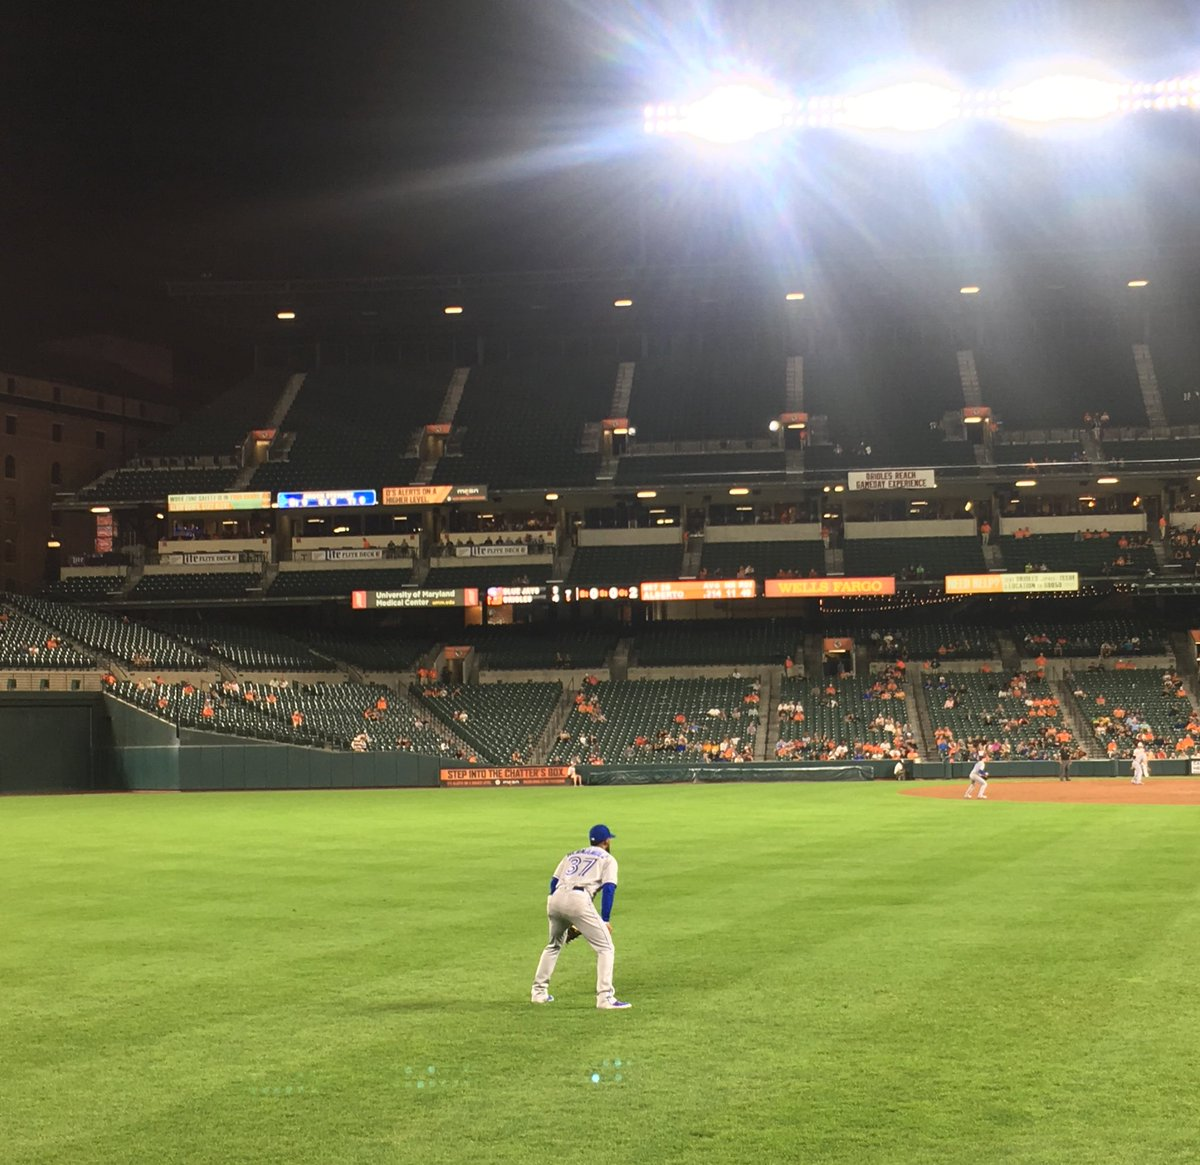 I don't normally shoutout opposition players but @TeoscarH is a class act in left field. He was bopping along to our home team chants (apparently a Beatles fan!) and was really good natured towards our light hecklers. He made some friends tonight in Baltimore.